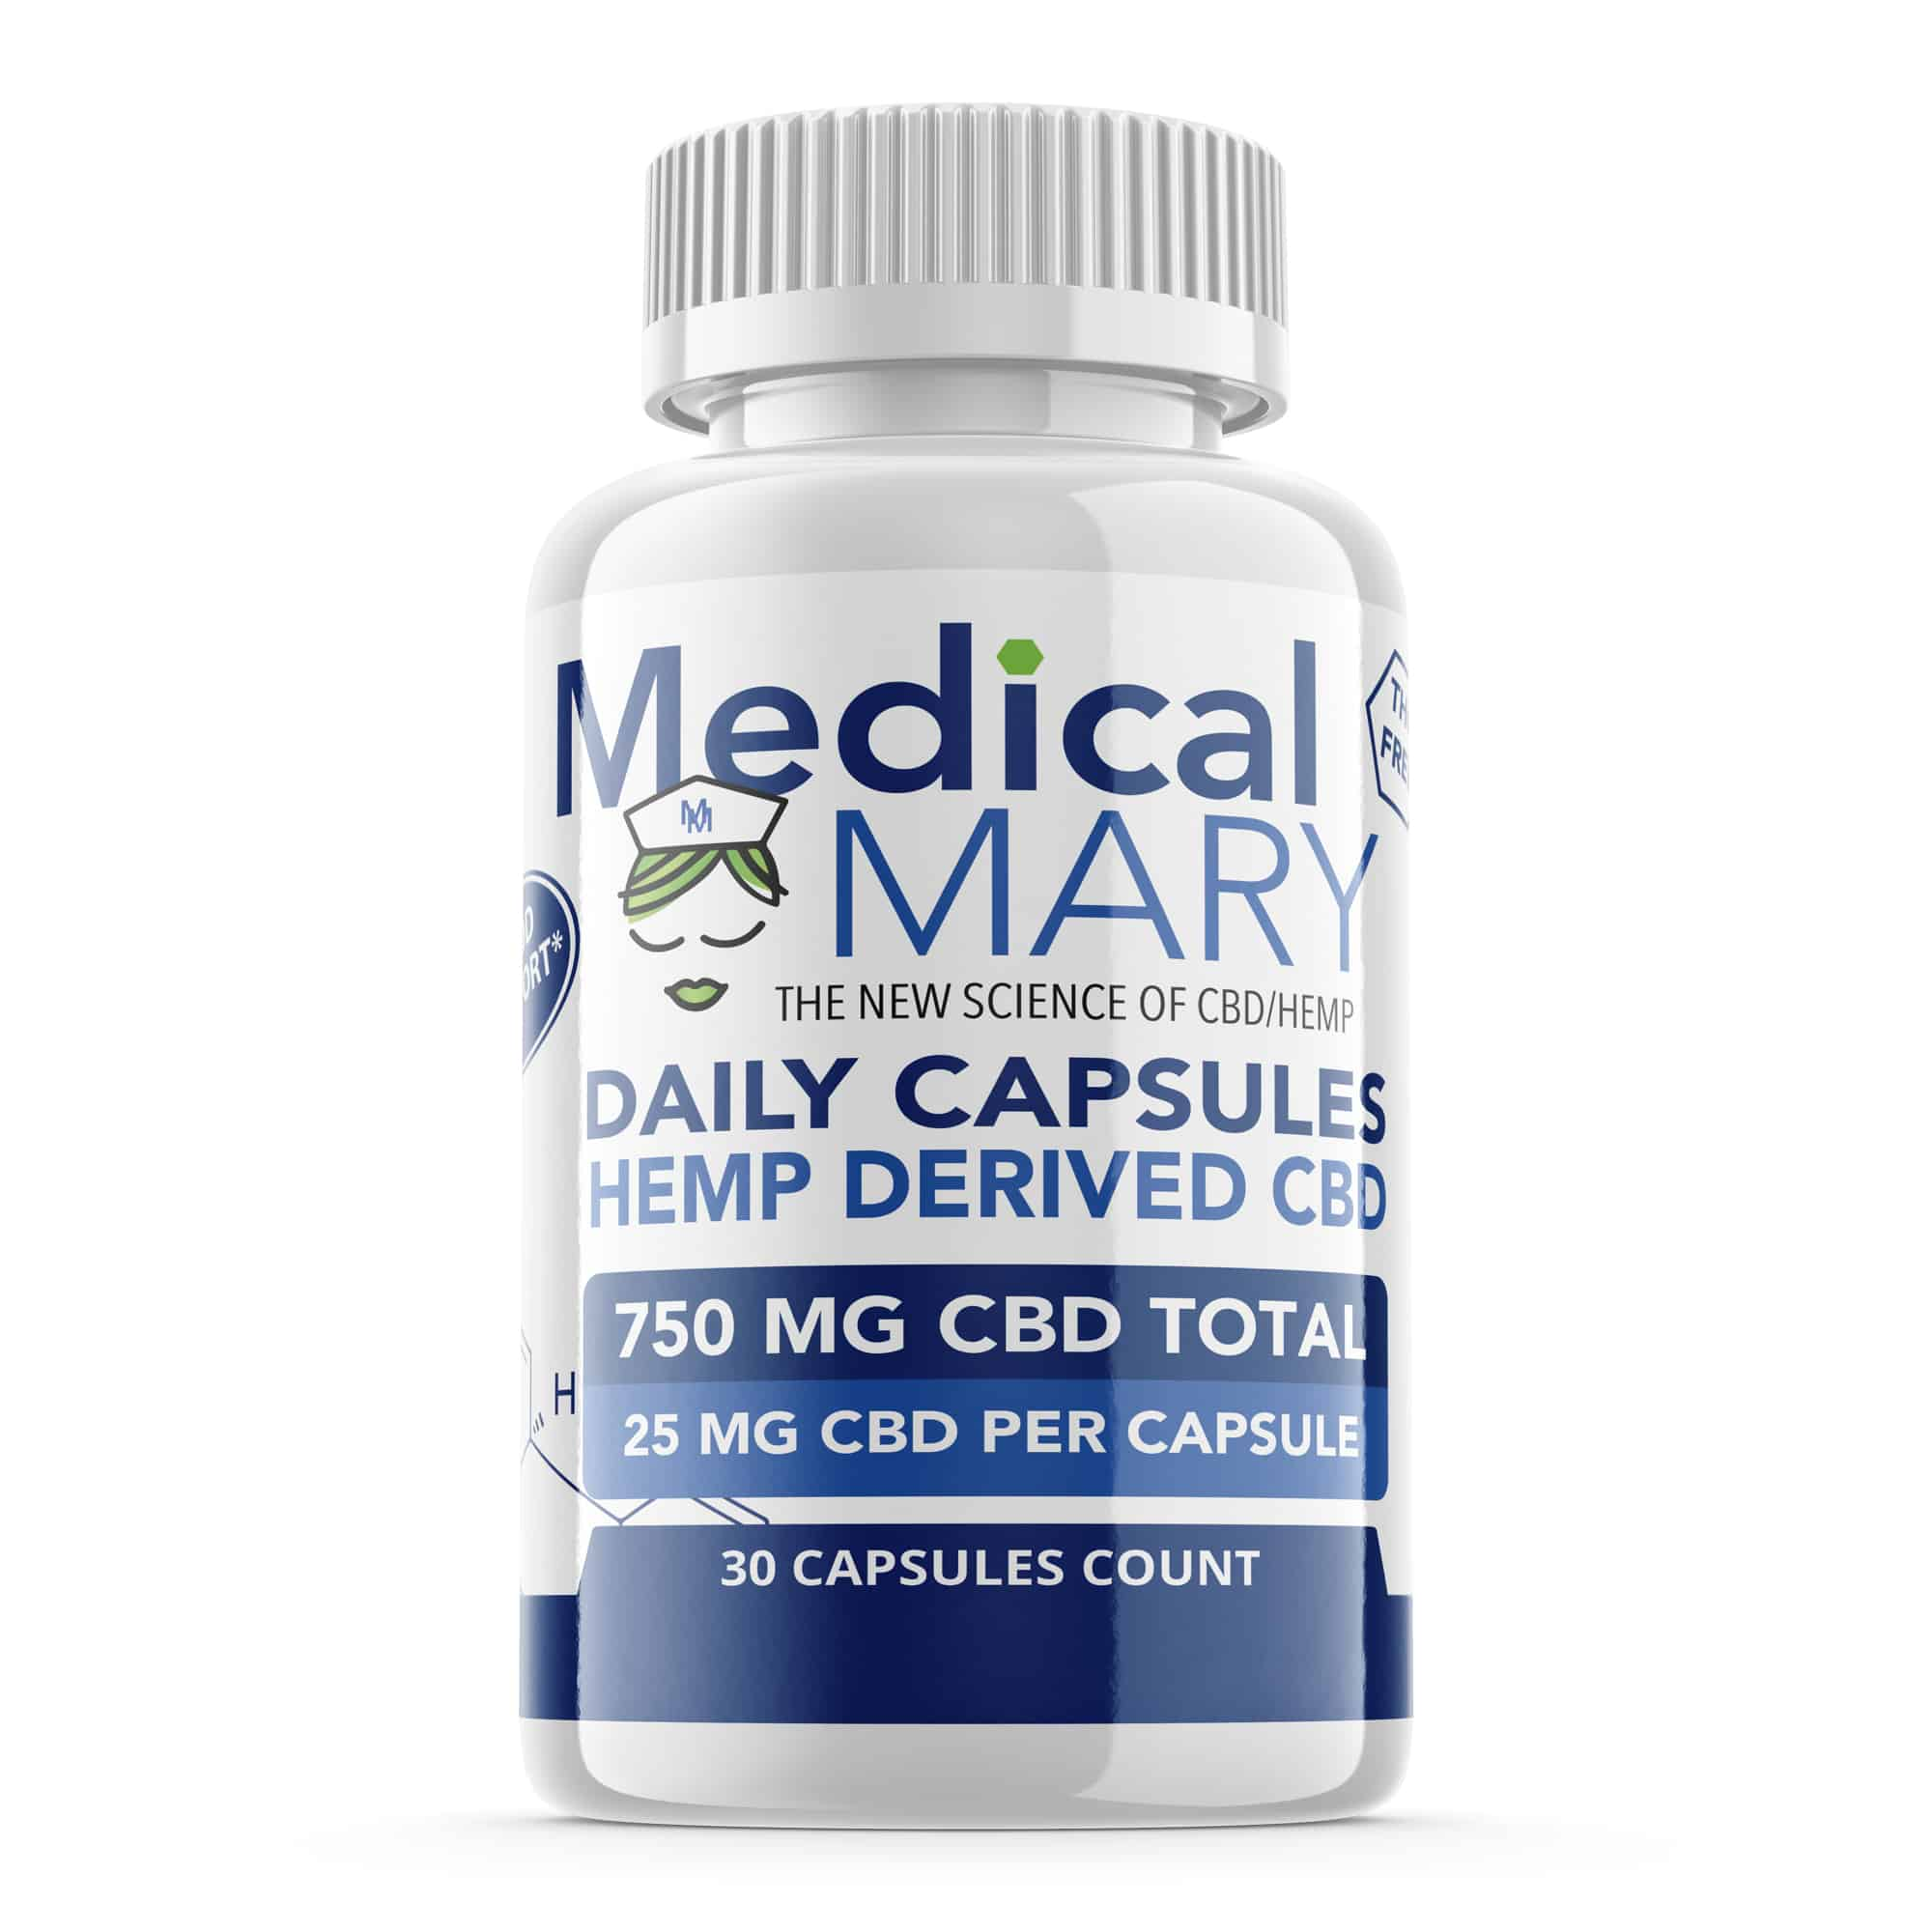 Best Daily Capsules CBD from Medical Mary